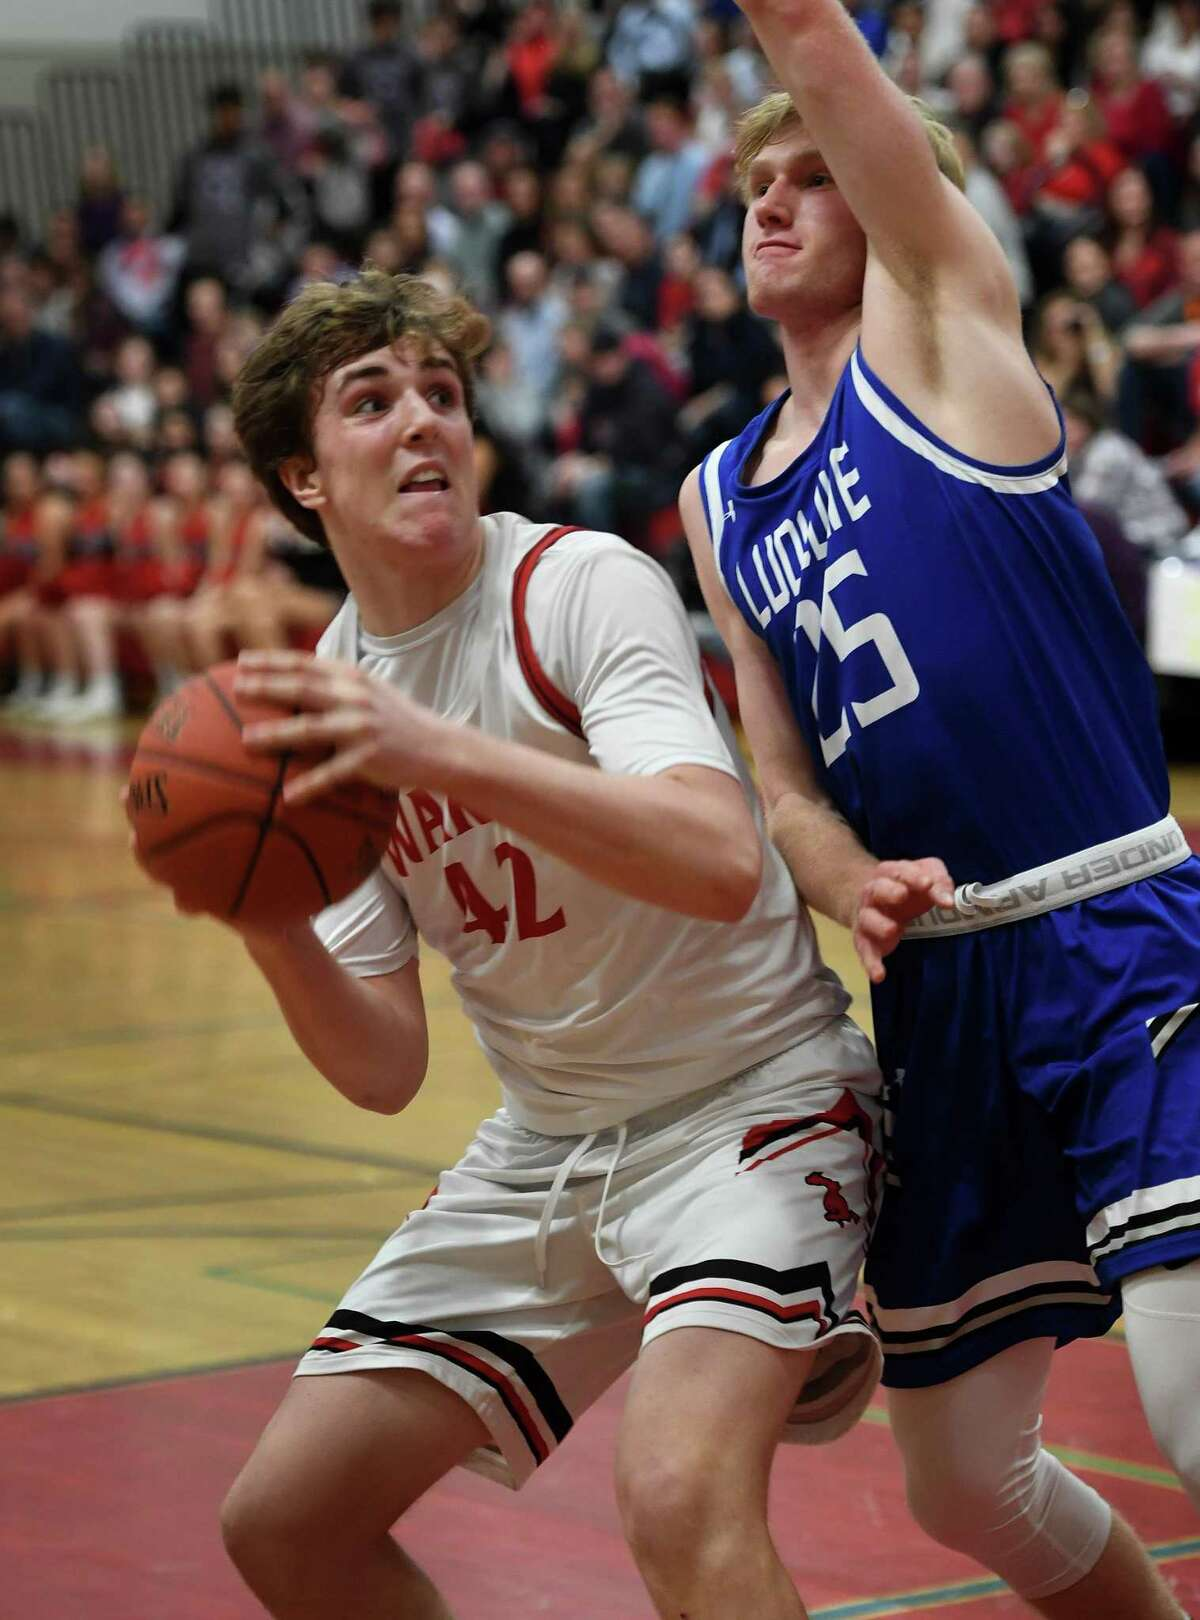 Warde's Jack McKenna looks to score inside defended by Ludlowe's Rowan Keeser in the first half of their boys basketball matchup for Coaches vs. Cancer at Warde High School in Fairfield, Conn. on Monday, February 03, 2020.